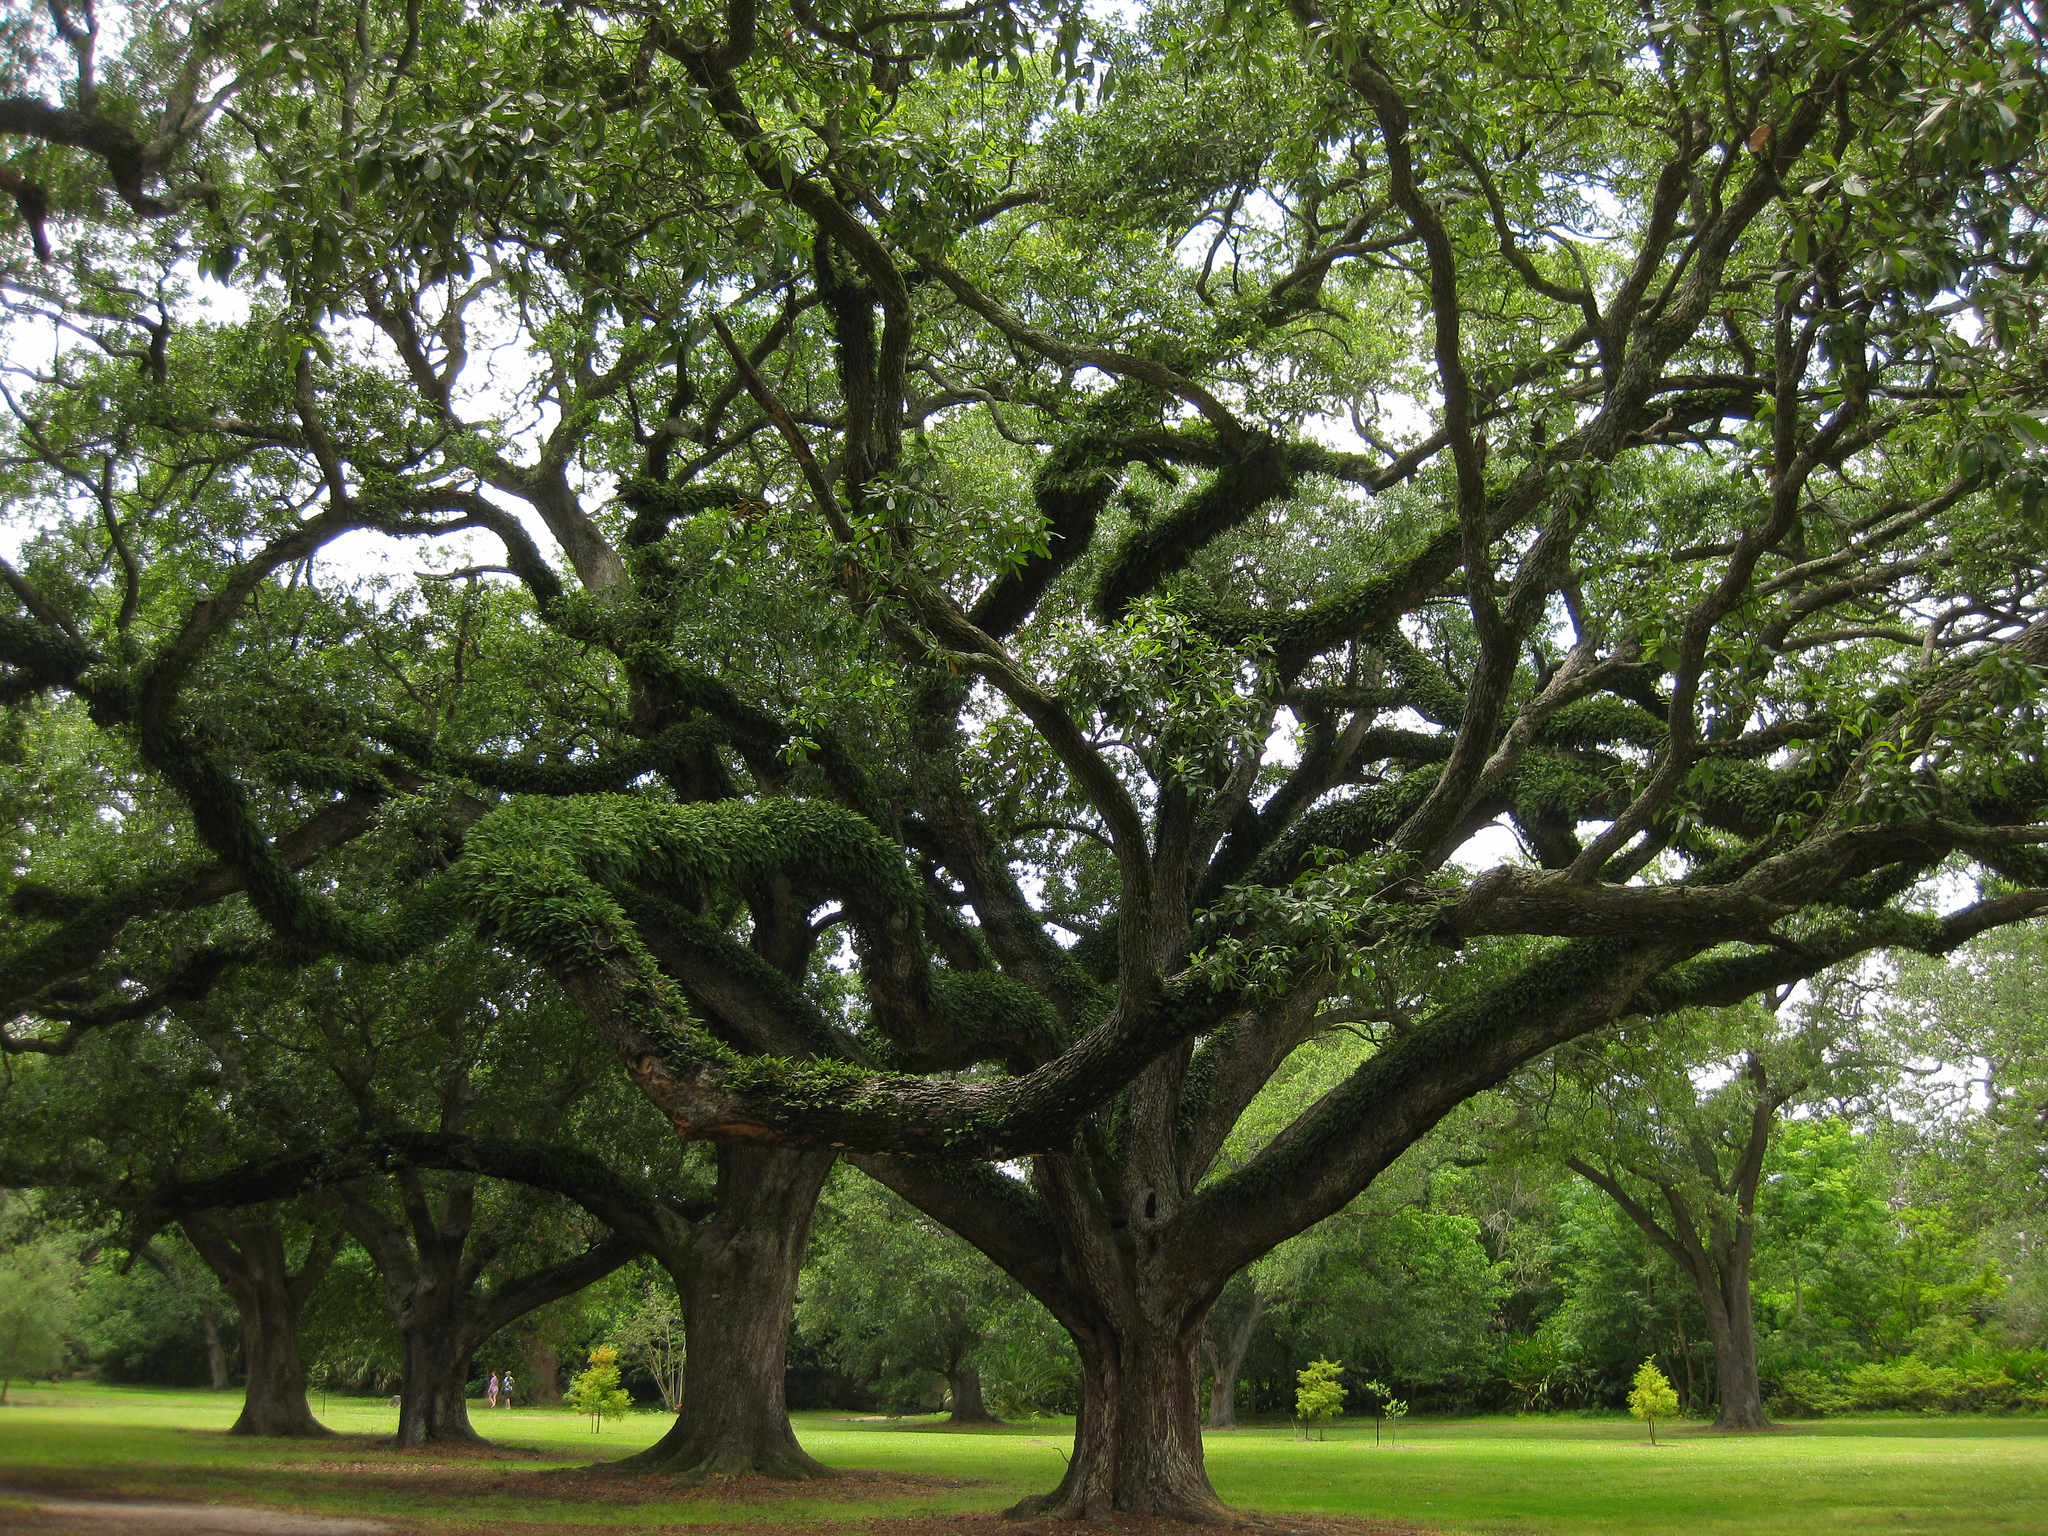 Audubon Park Oak trees.  Photo  by  Kristen Bobo  via flickr.